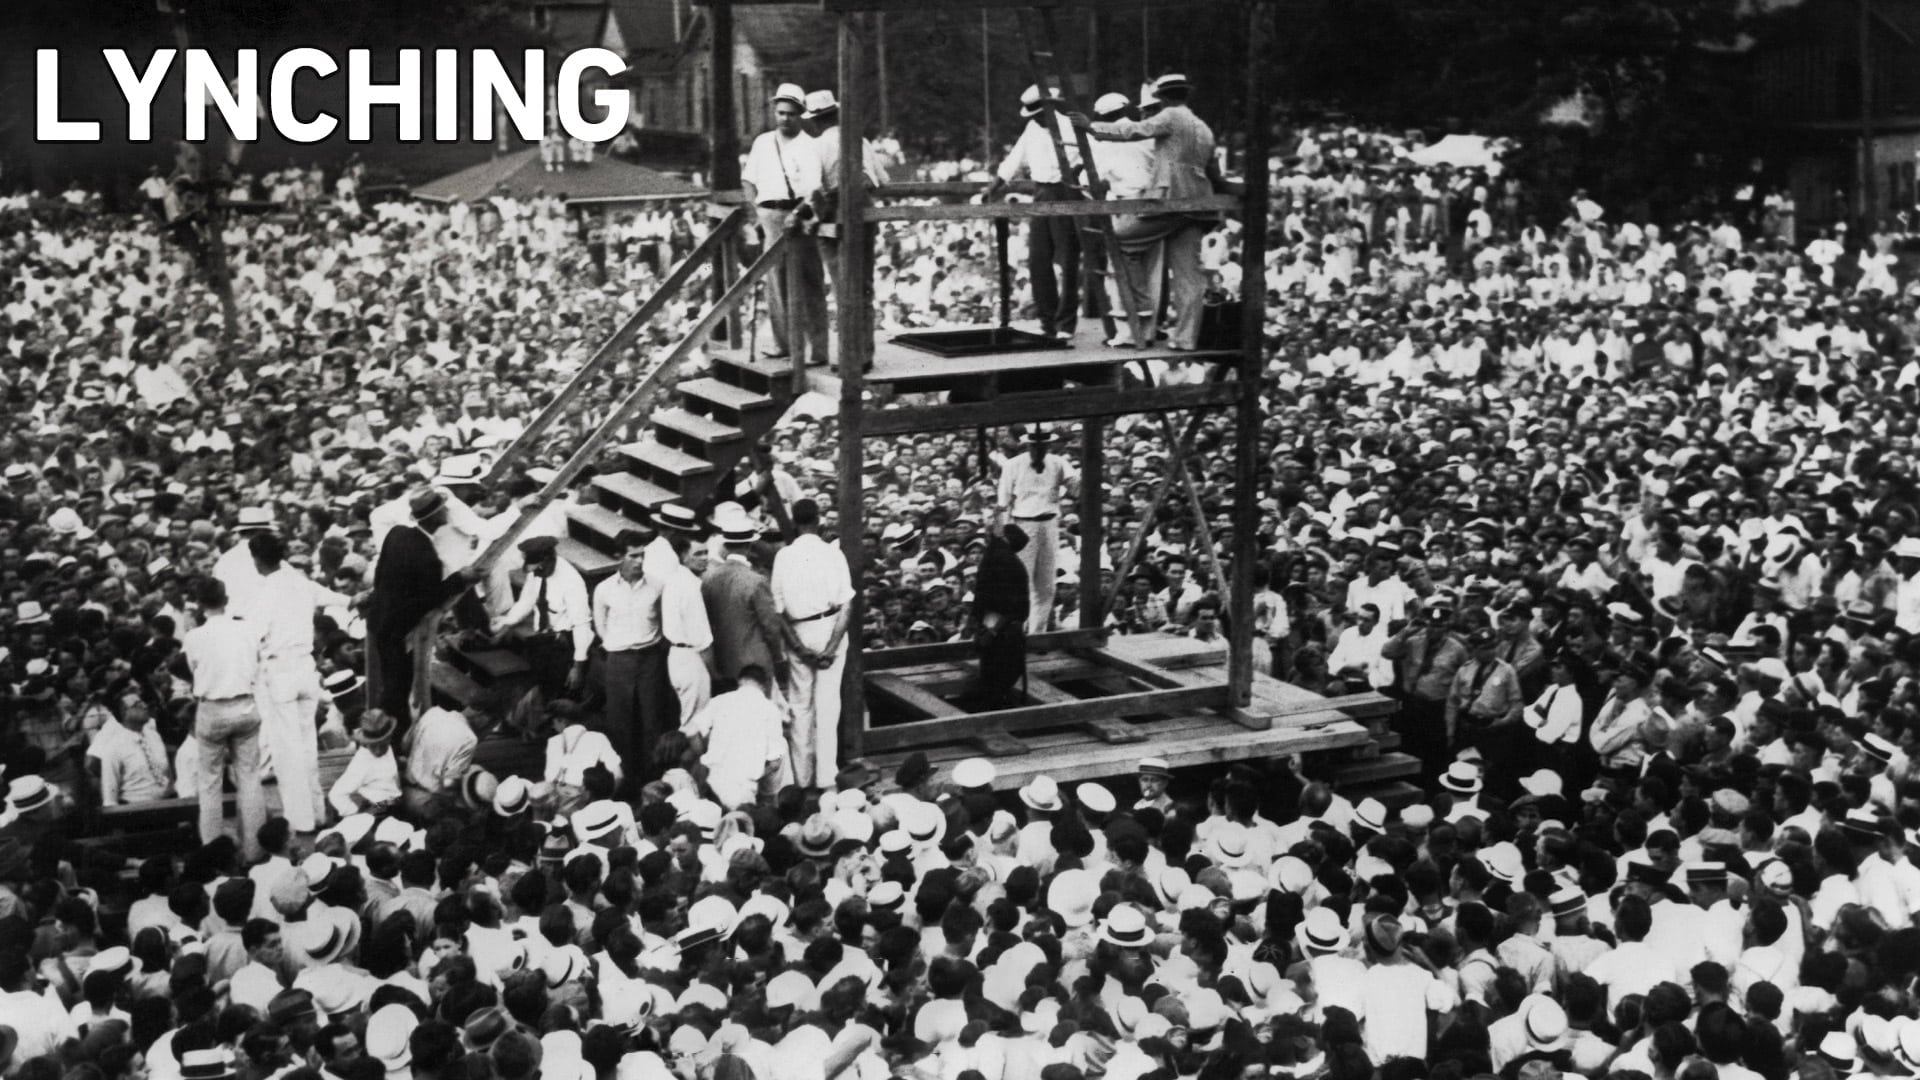 Lynching | Black History in Two Minutes (or so)